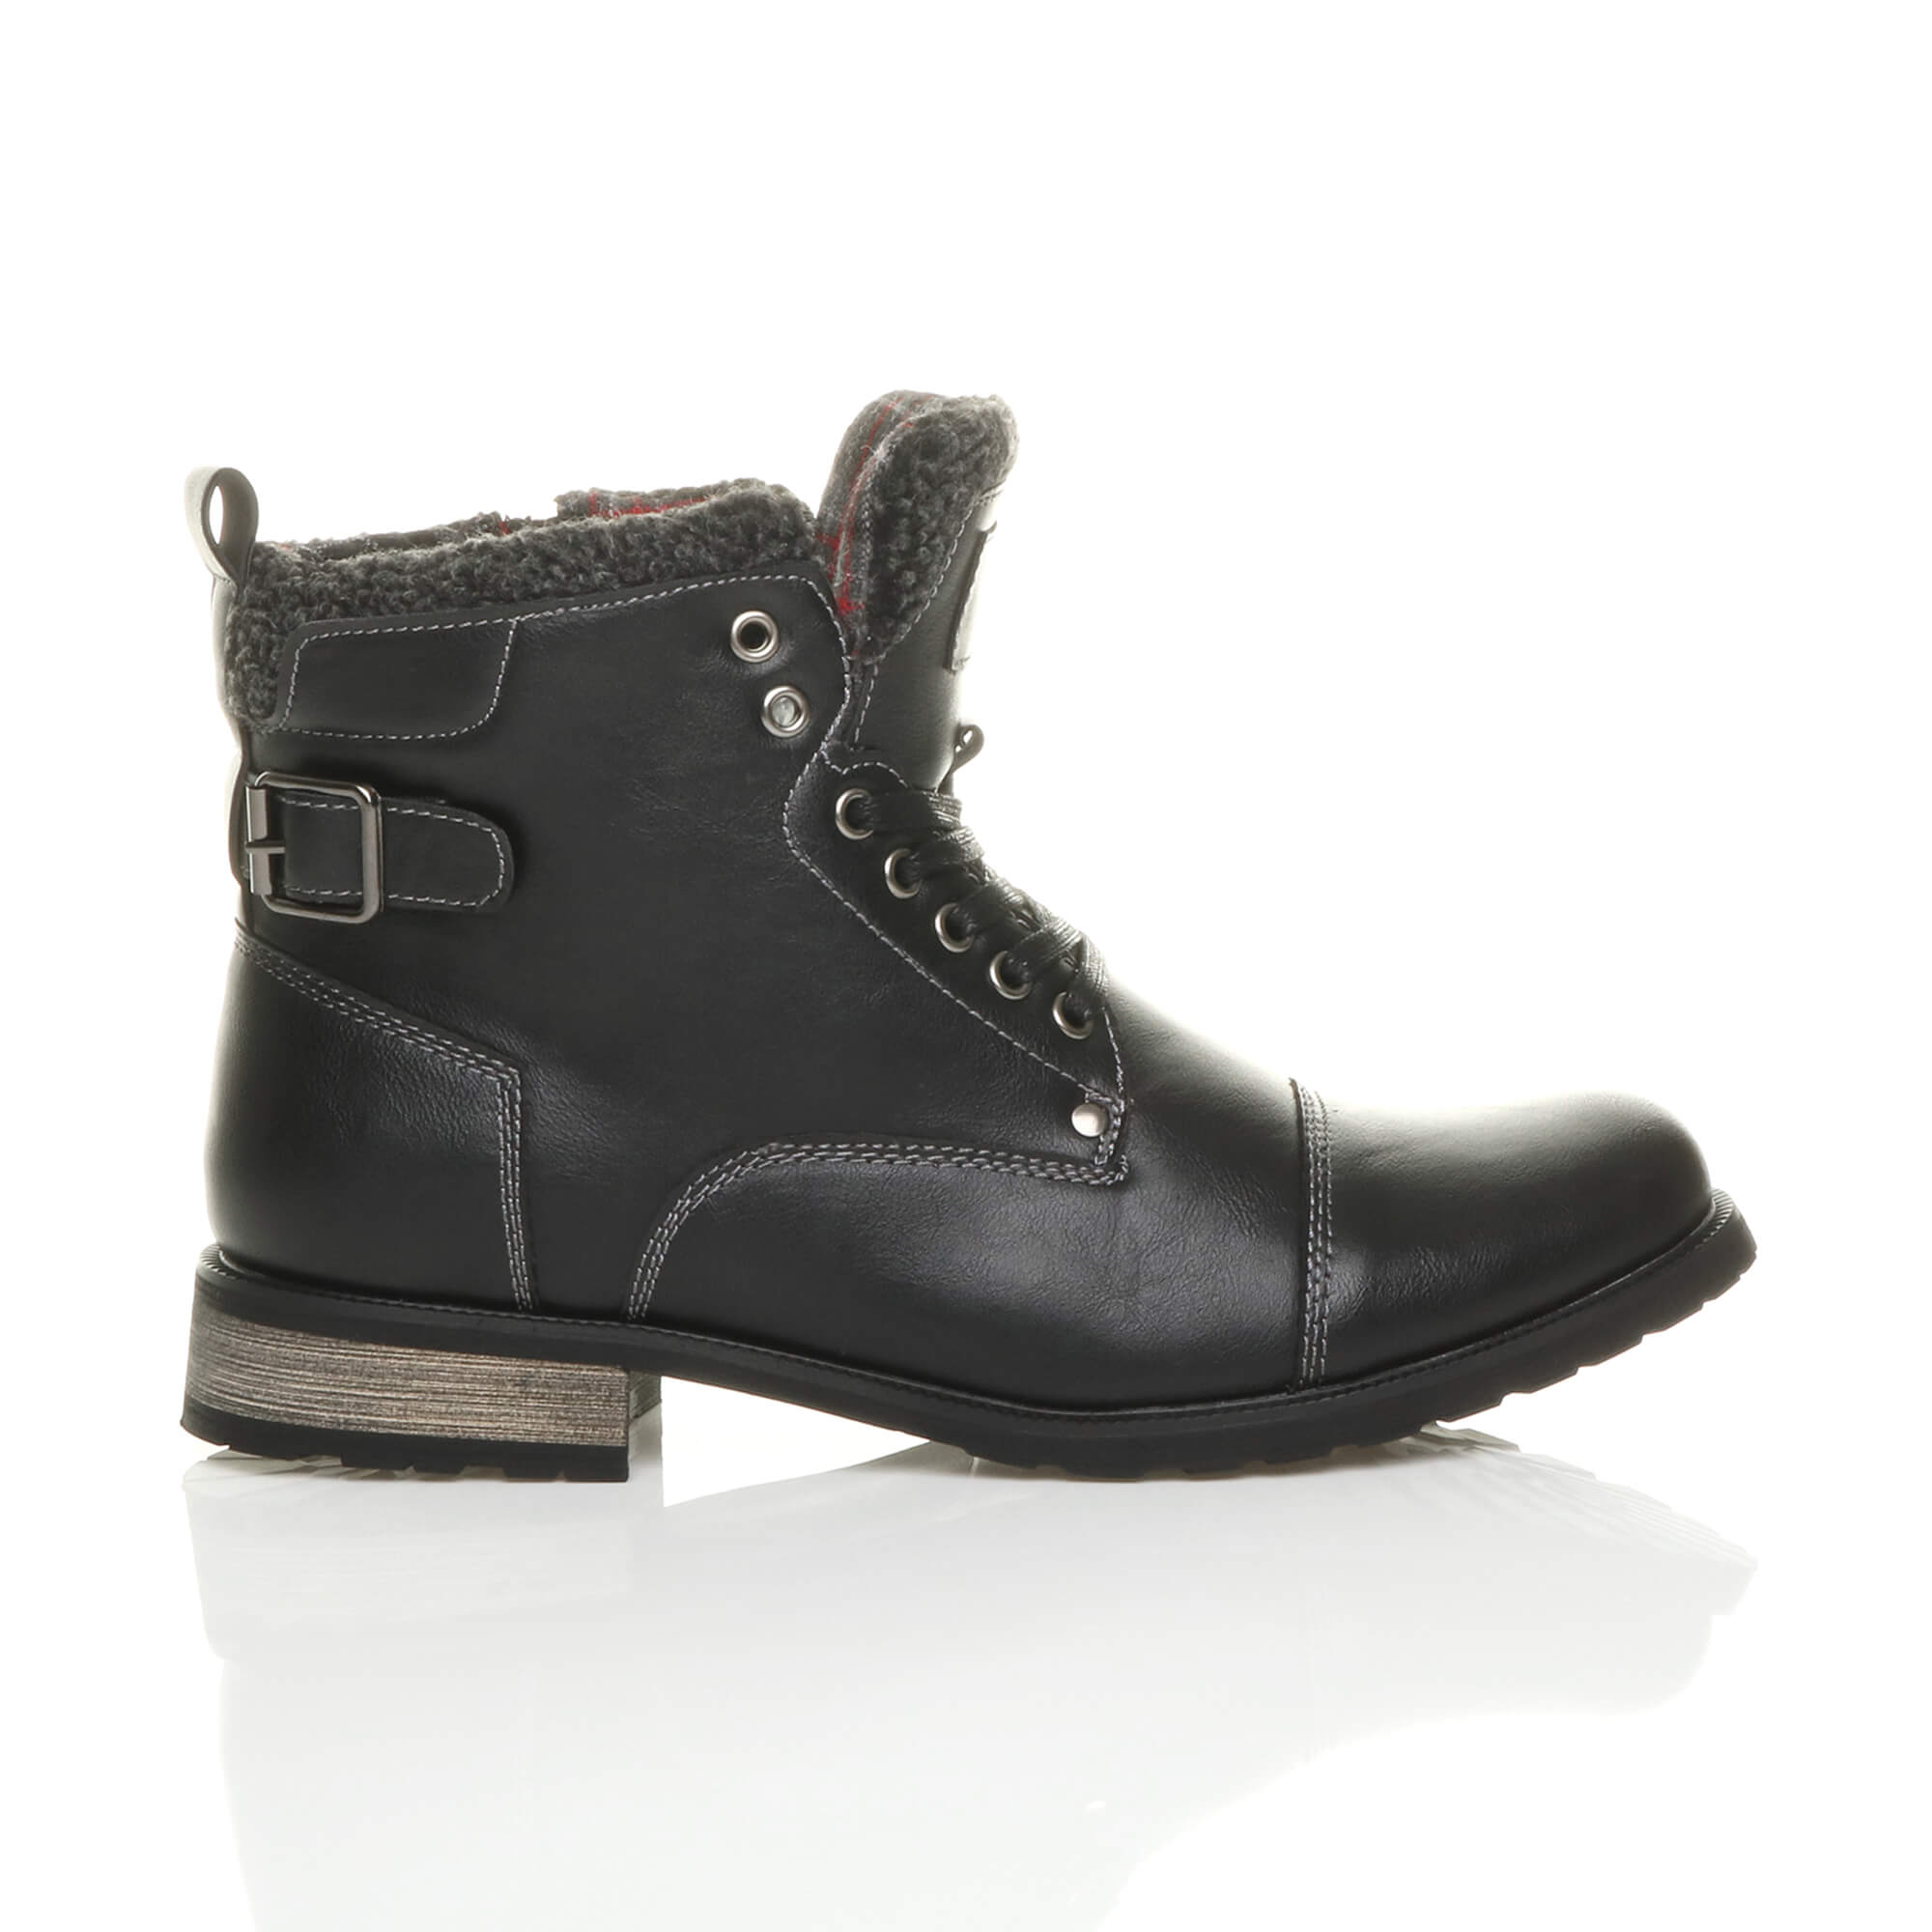 MENS-LACE-UP-ZIP-FUR-TRIM-SMART-WORK-WINTER-ARMY-MILITARY-BIKER-ANKLE-BOOTS-SIZE thumbnail 3